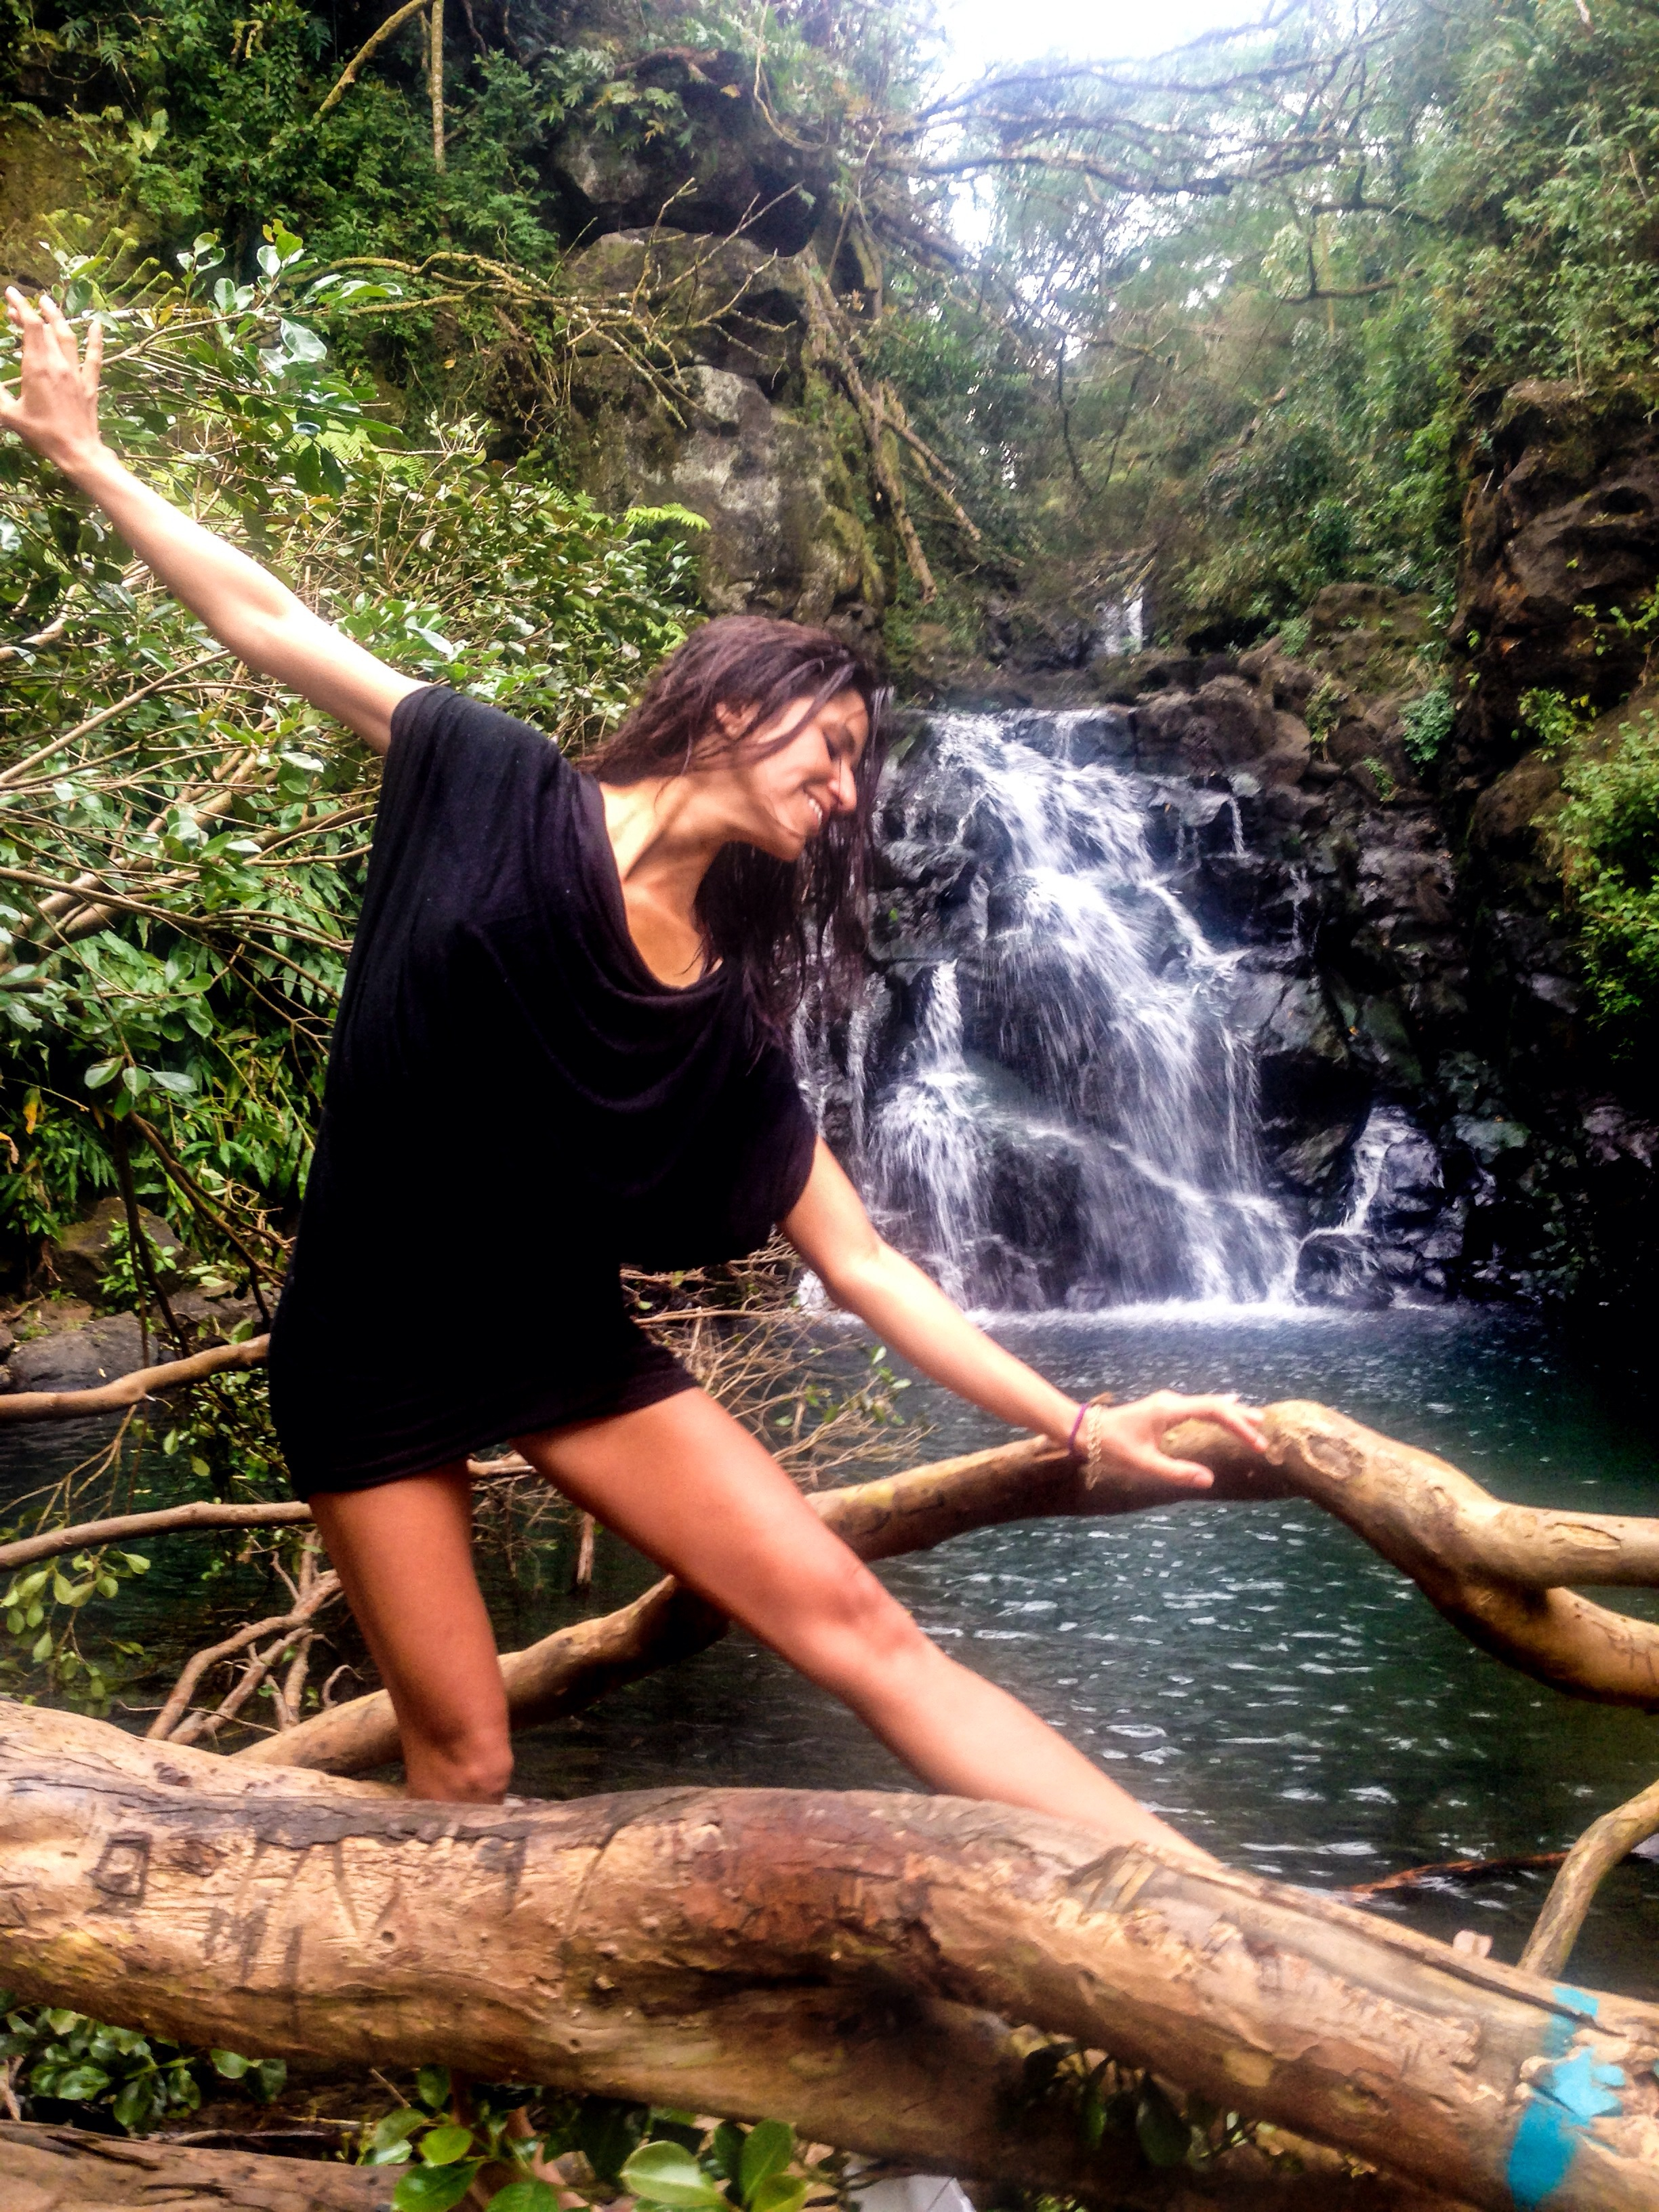 A little ballet for the waterfall.